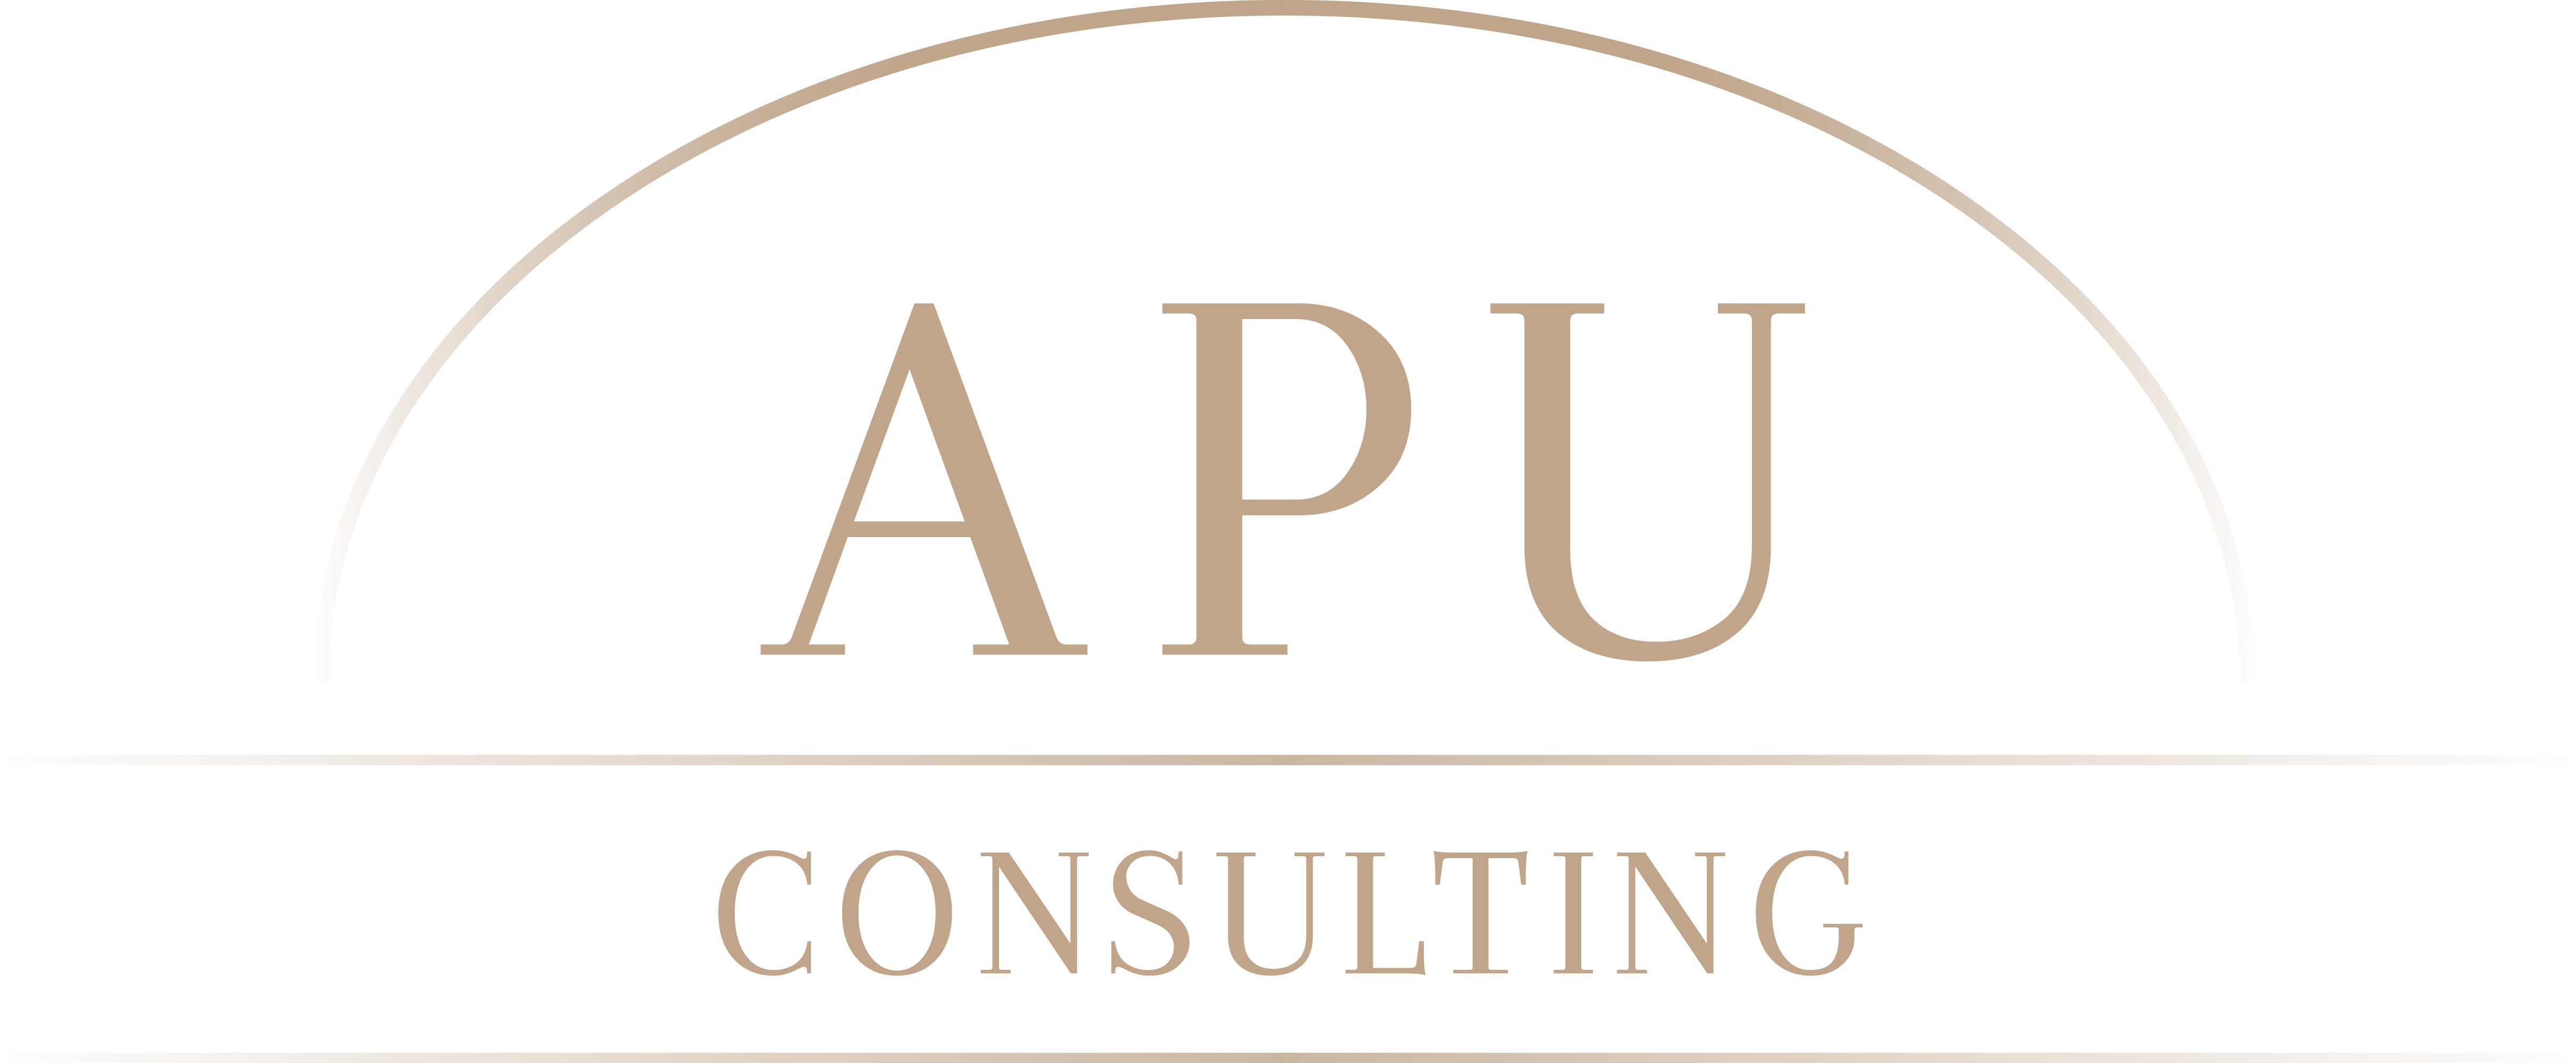 logo_consulting.png